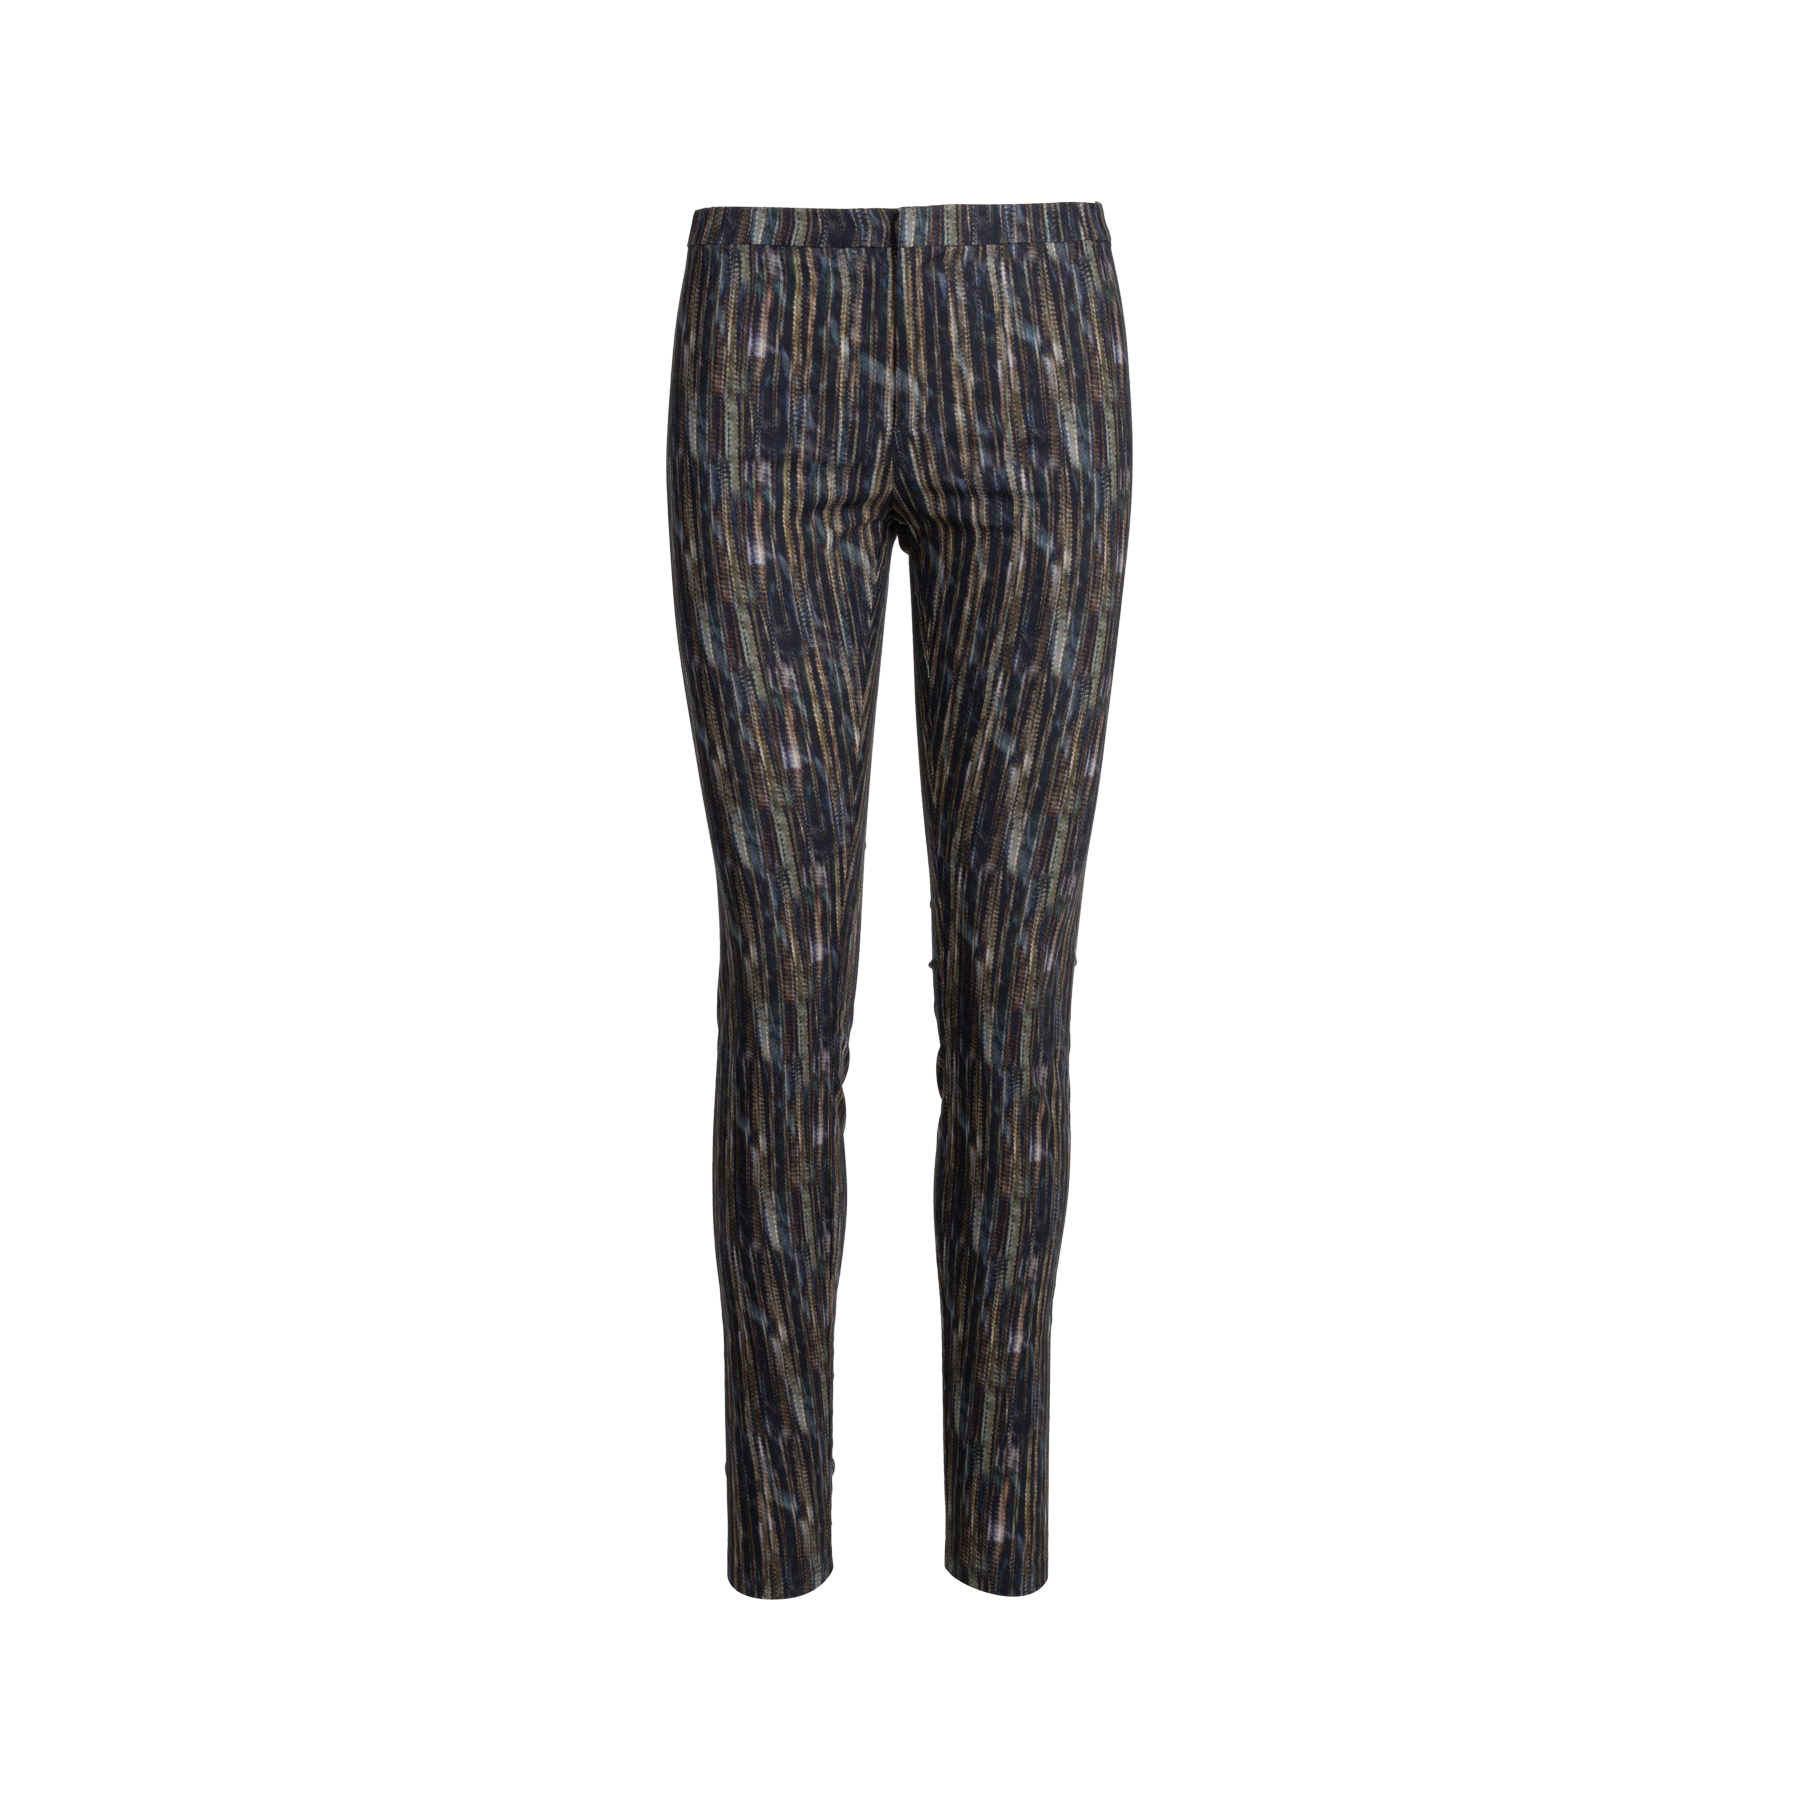 1d56e271f1f45 Pants Black and White Theyskens Theory